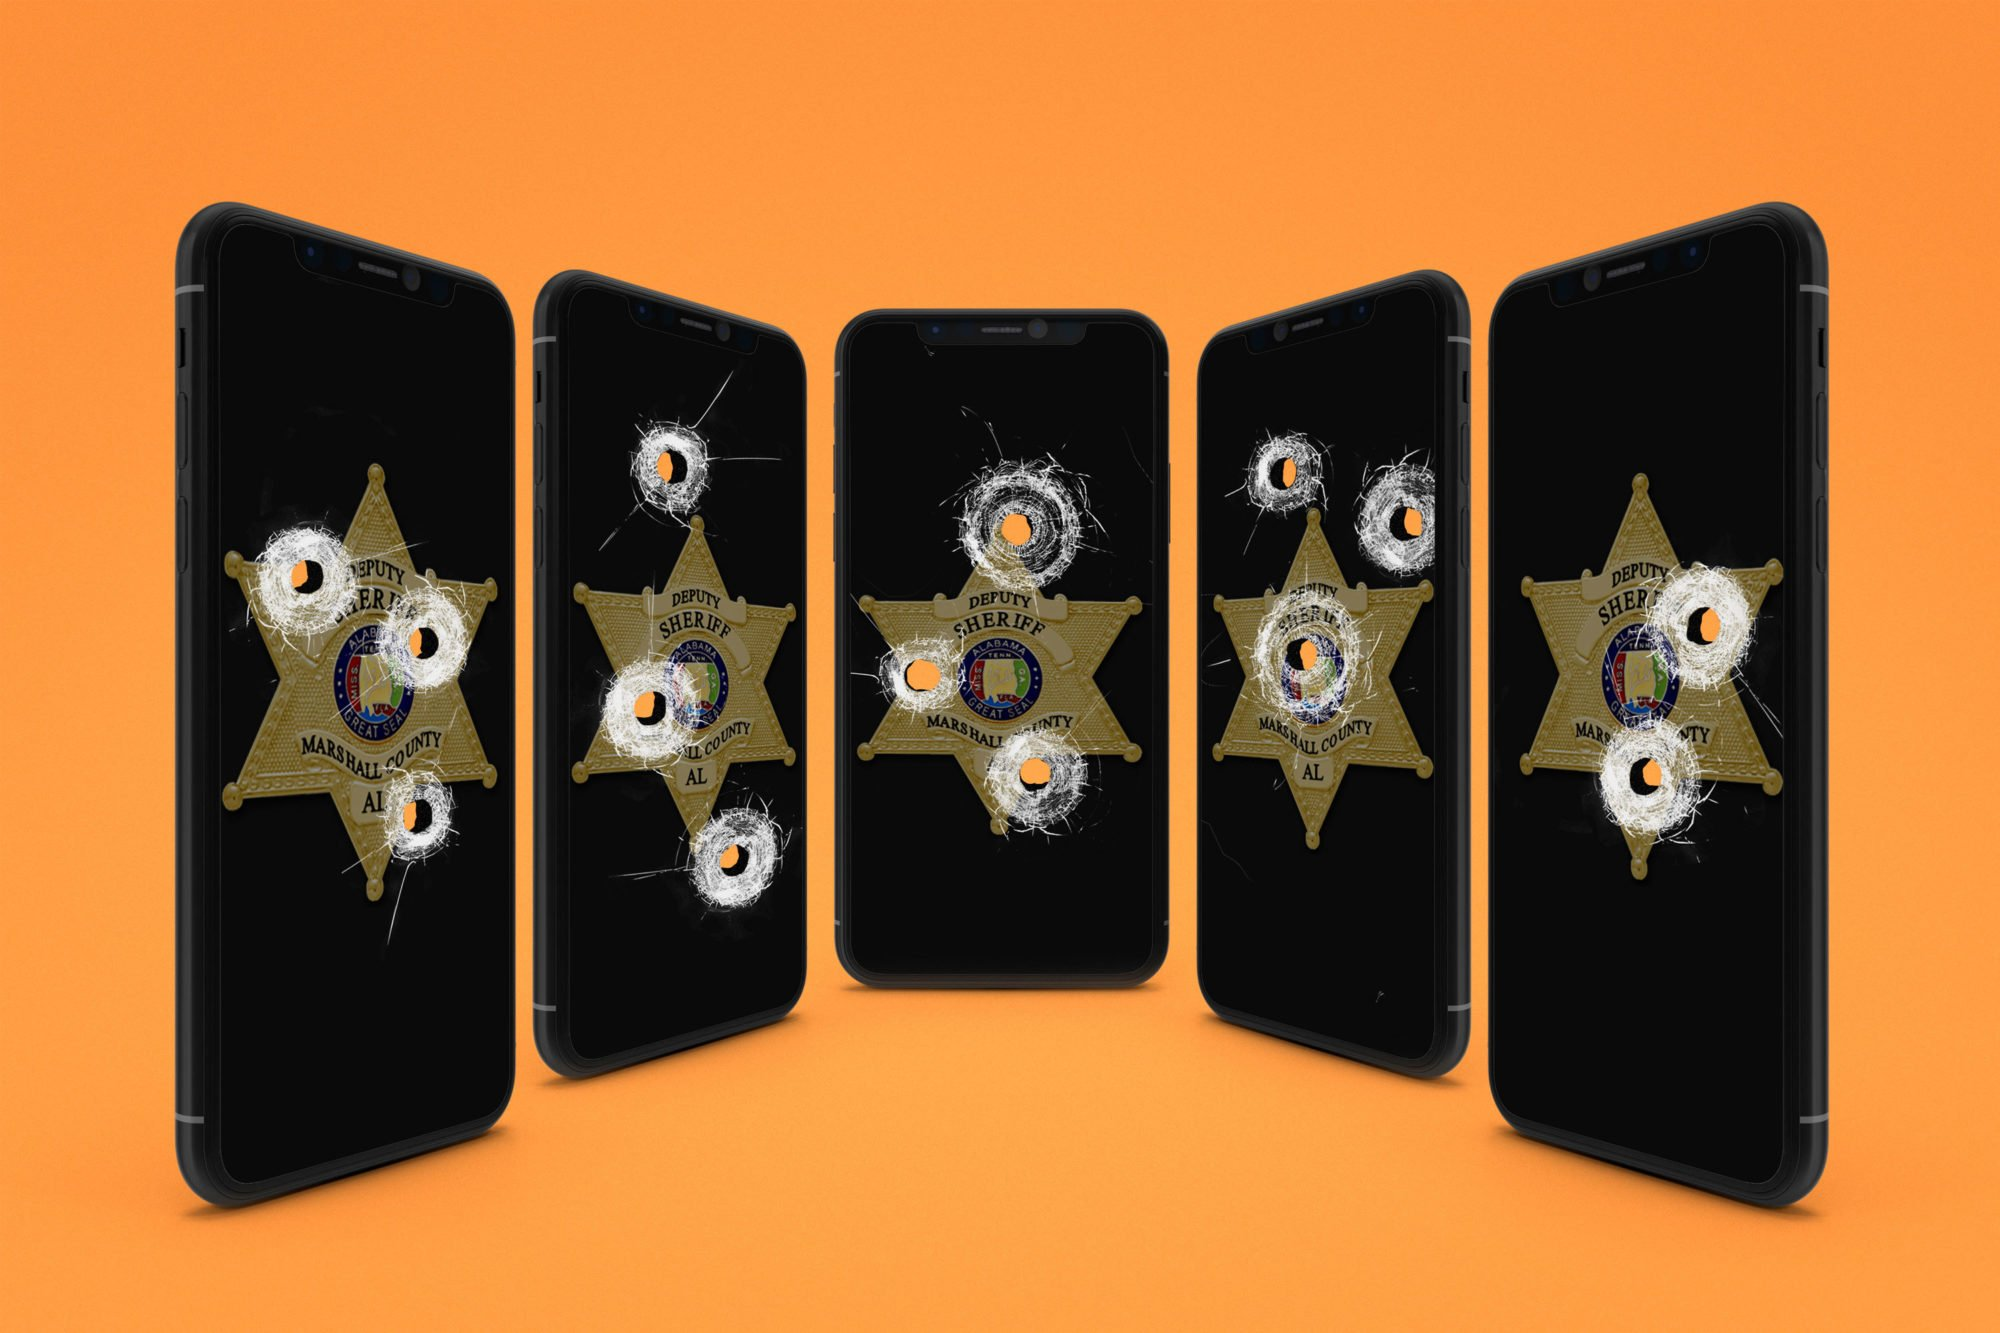 Wasted Funds, Destroyed Property: How Sheriffs Undermined Their Successors After Losing Reelection